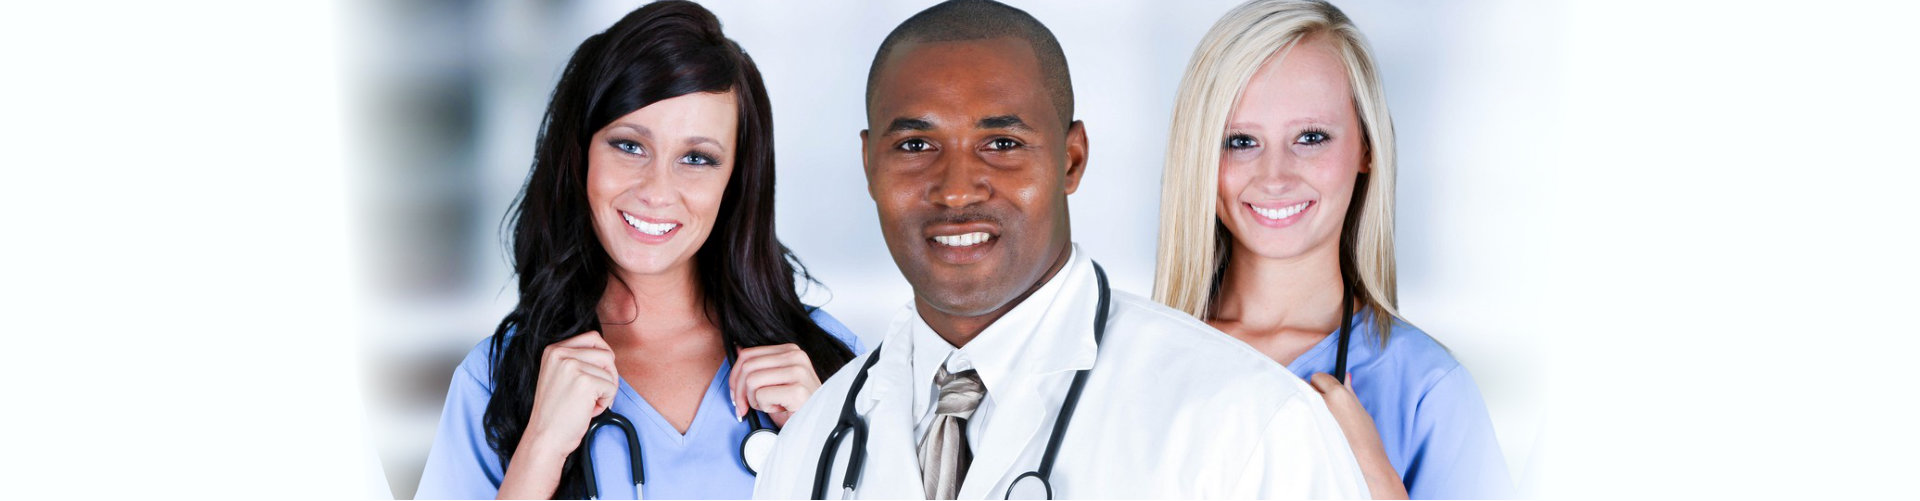 medical professionals with stethoscope smiling